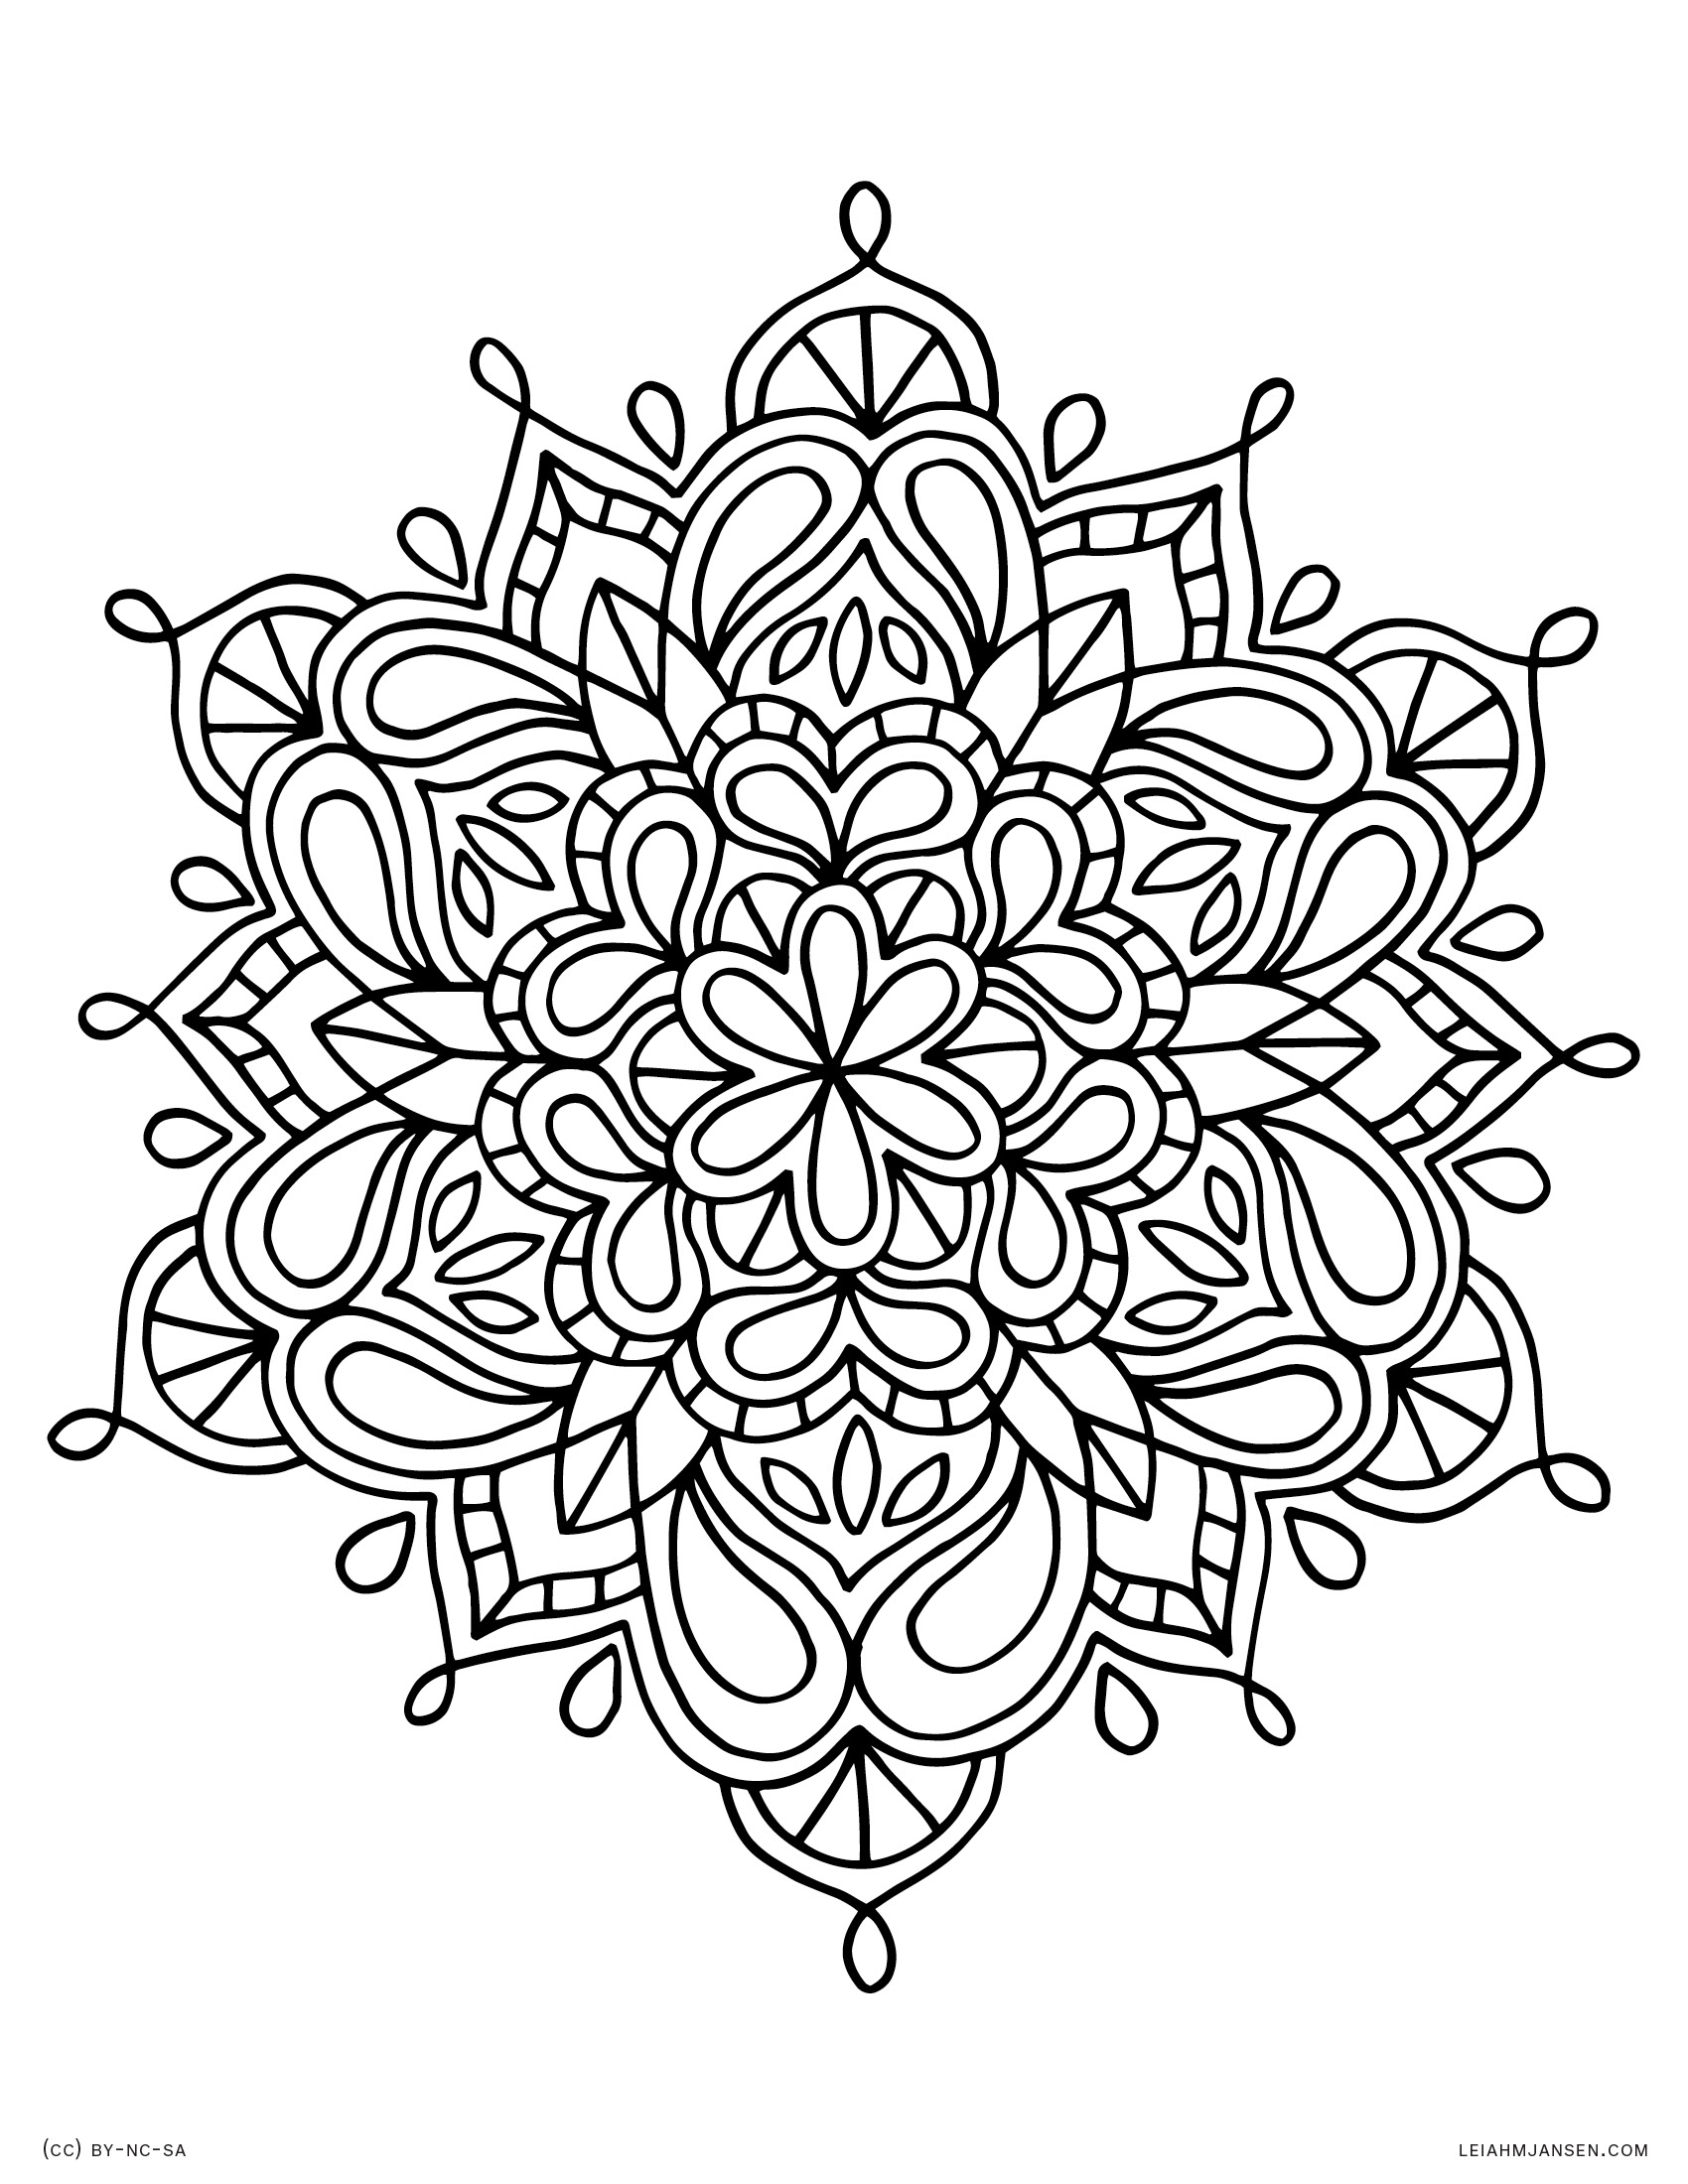 symmetrical coloring pages 7 best images of symmetrical drawing pages printable coloring pages symmetrical